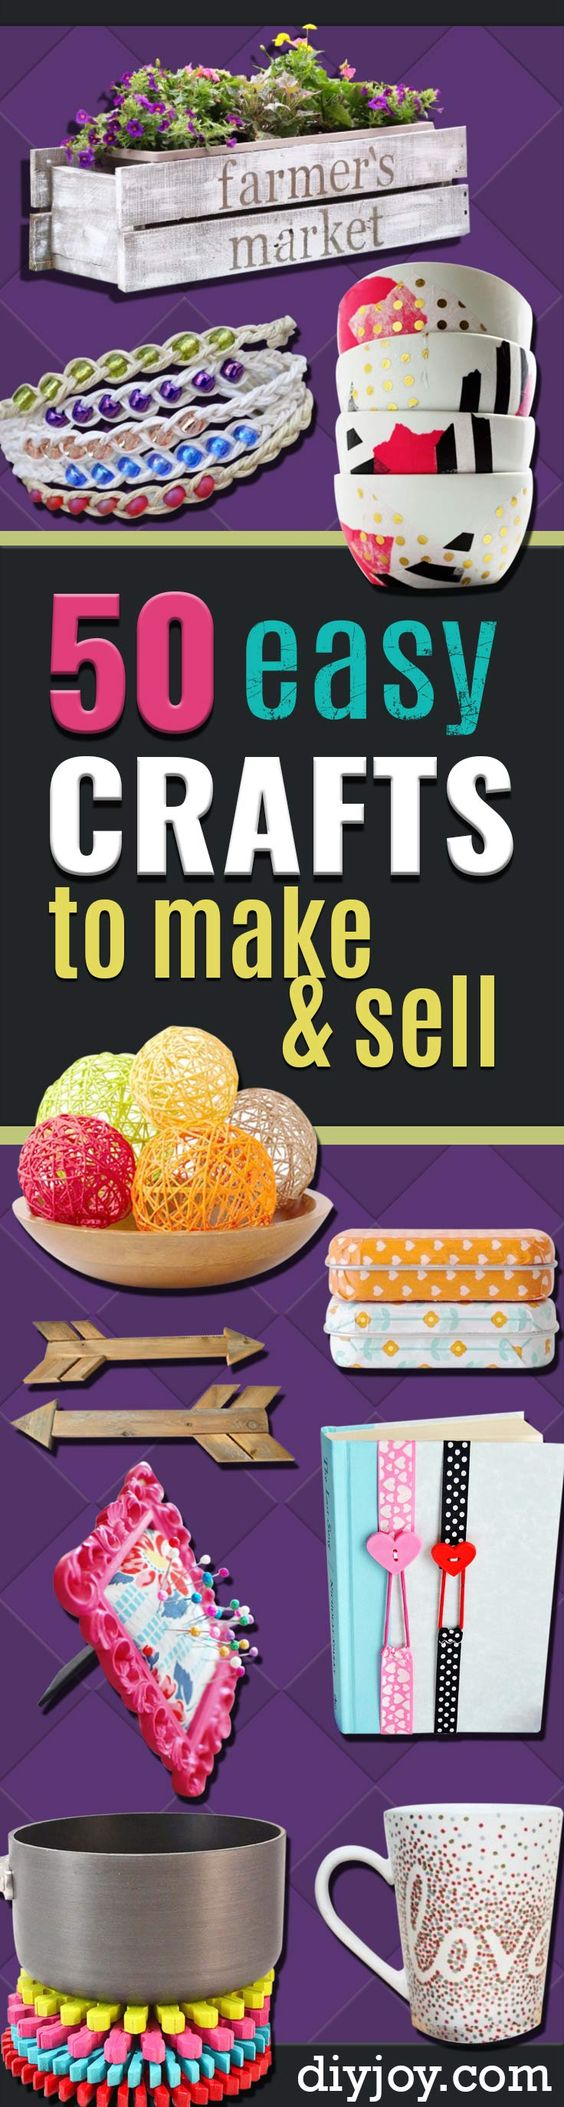 50 easy crafts to make and sell homemade make and sell for What can i make at home to sell online